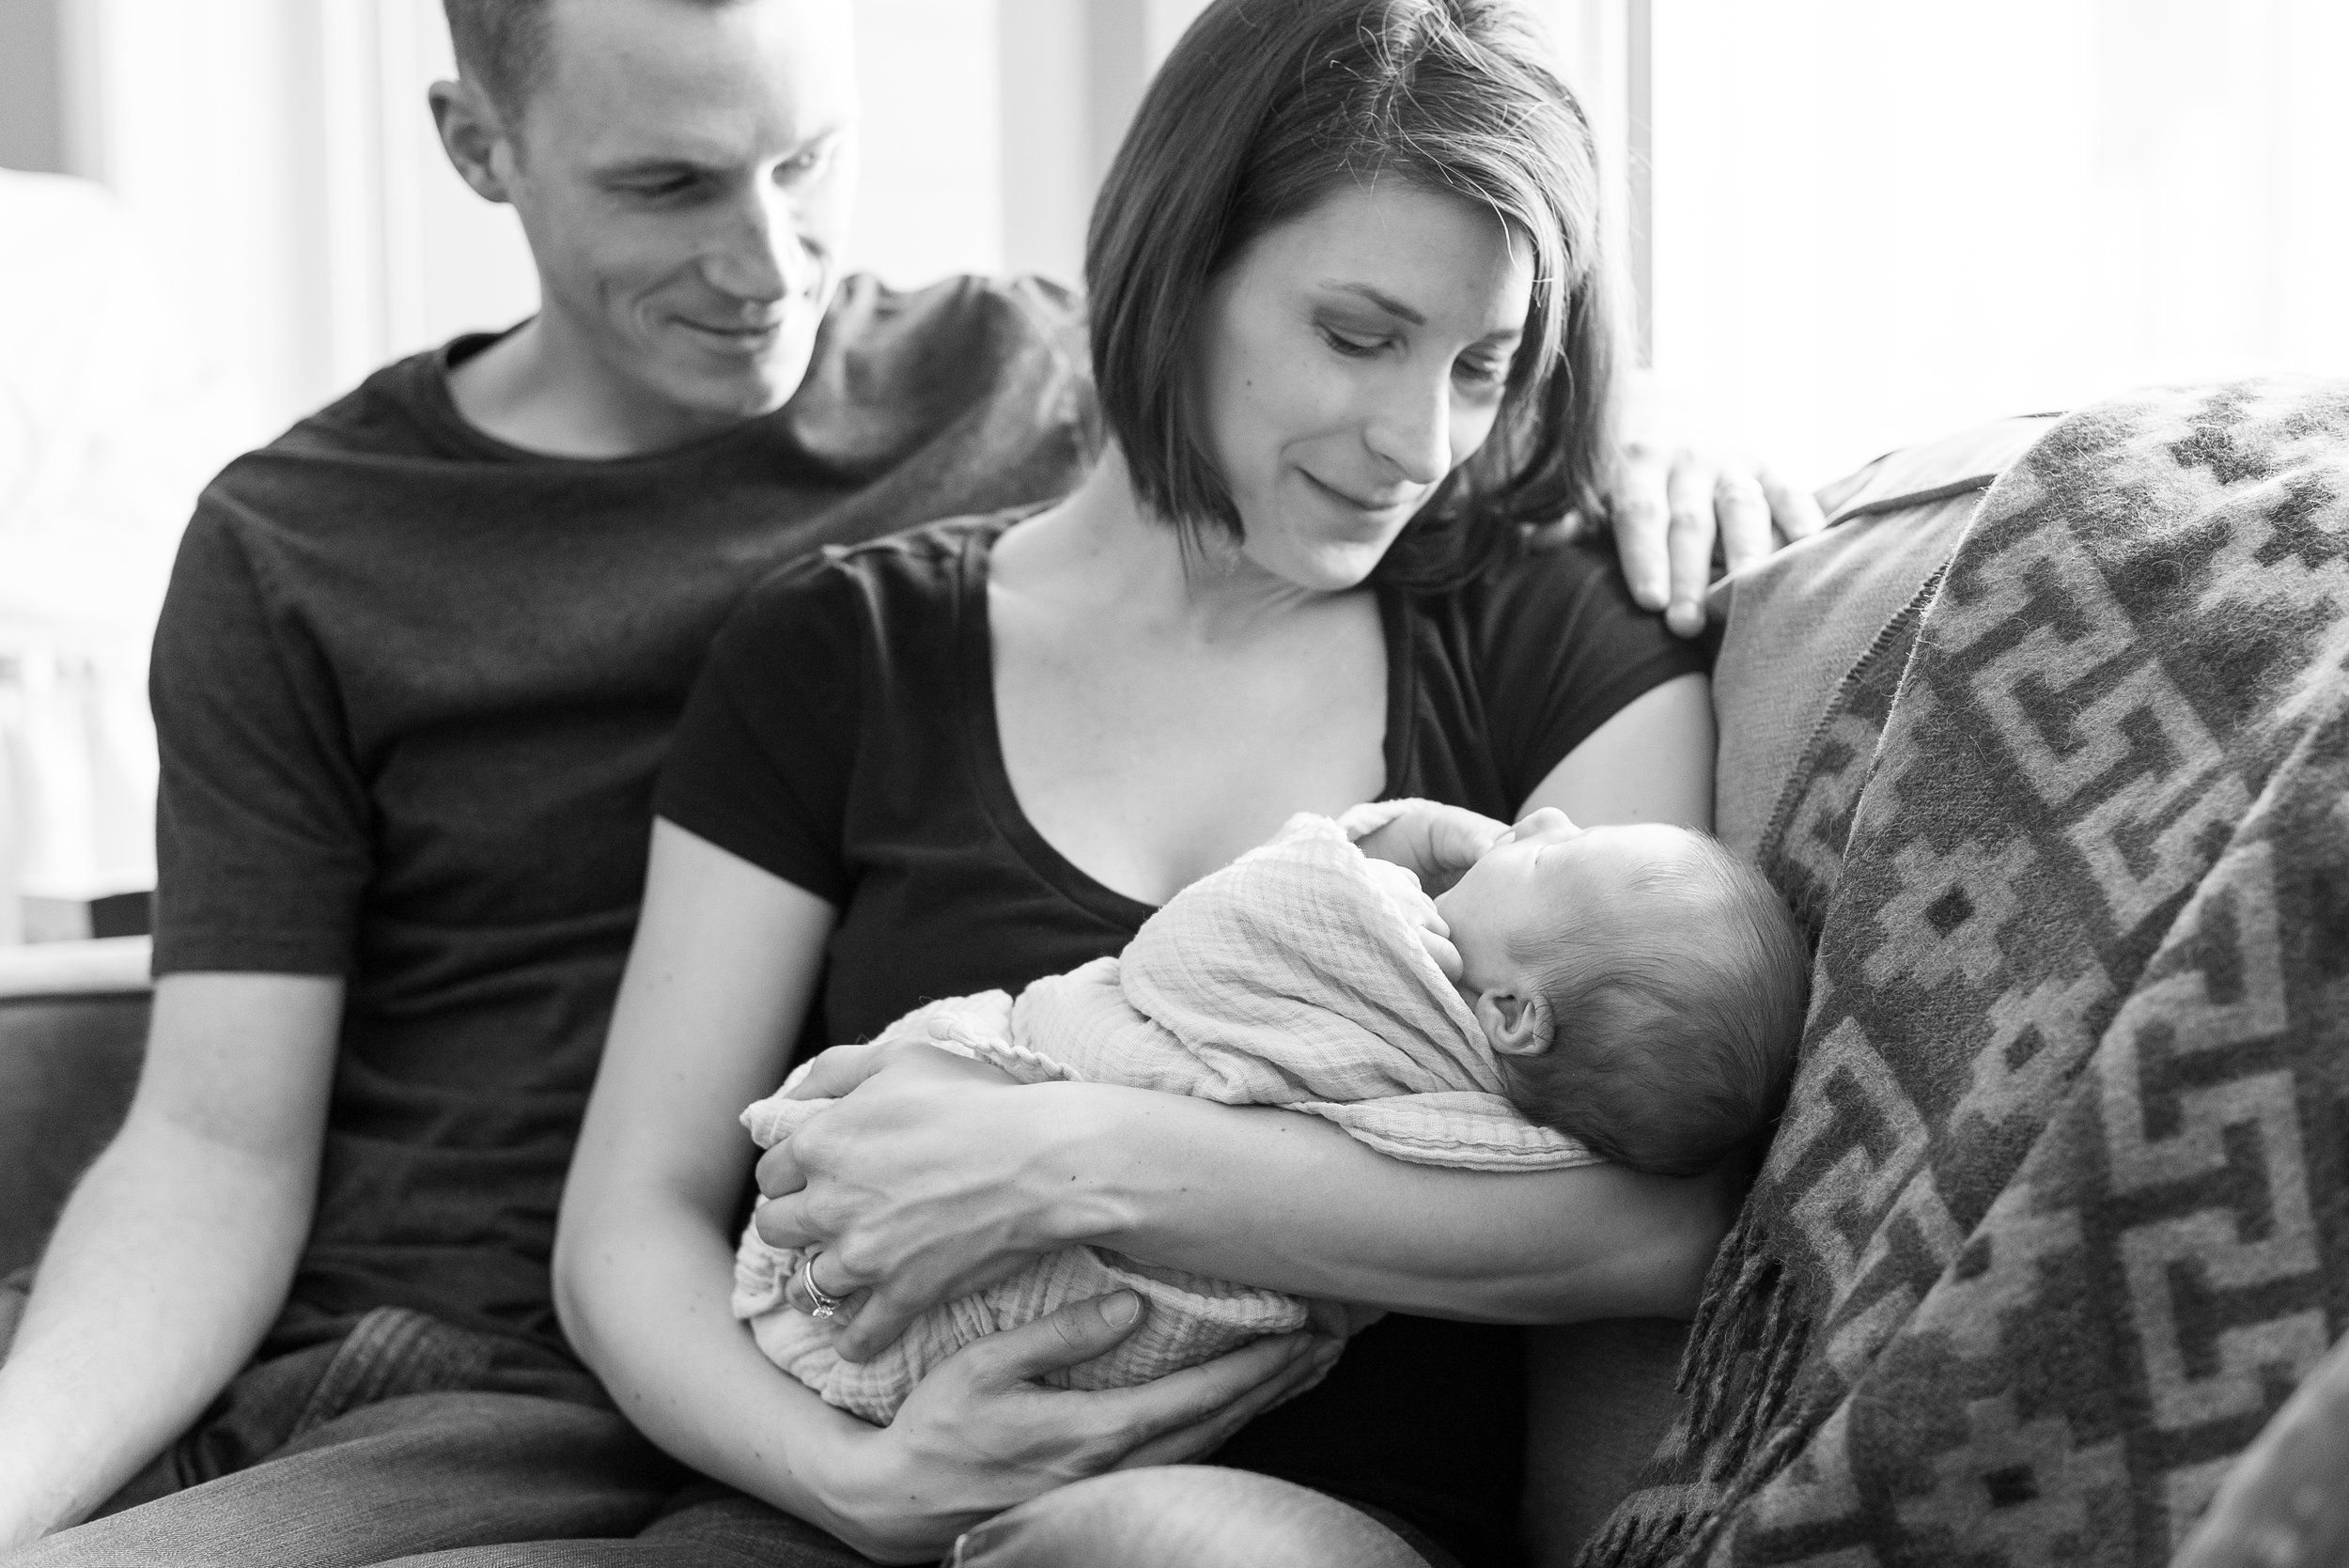 See the doting?? They're so in love with the little guy...